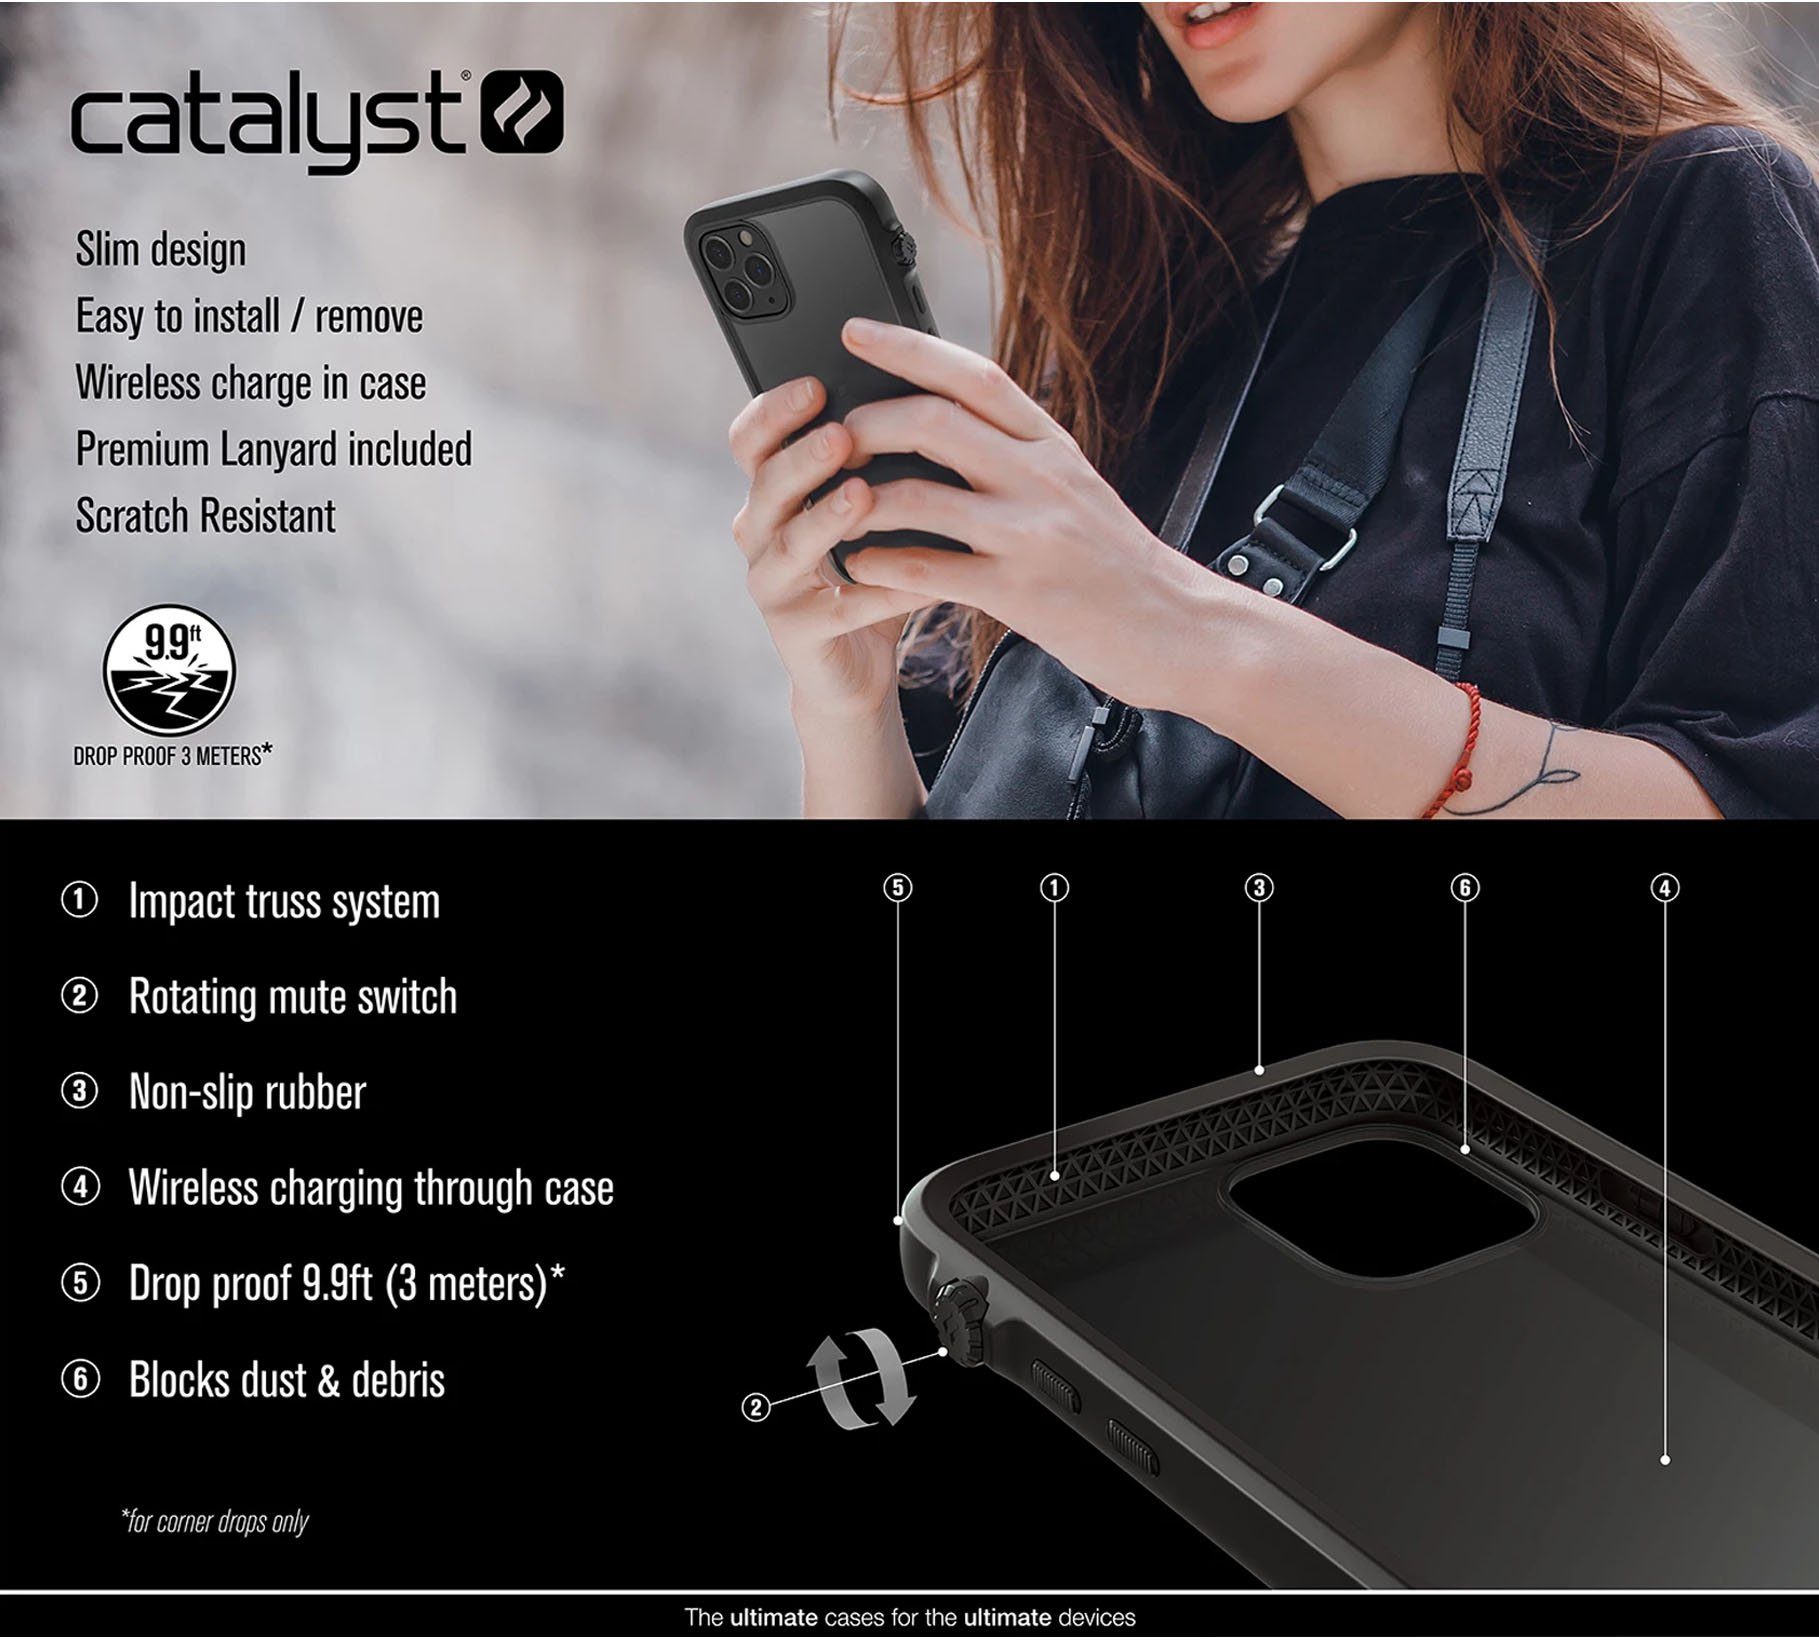 catalyst/840625104598/1-des-fx-catalyst-waterproof-case%20-iphone-11-pro-stealth-black-color-840625104598-malaysia-authorised-retailer